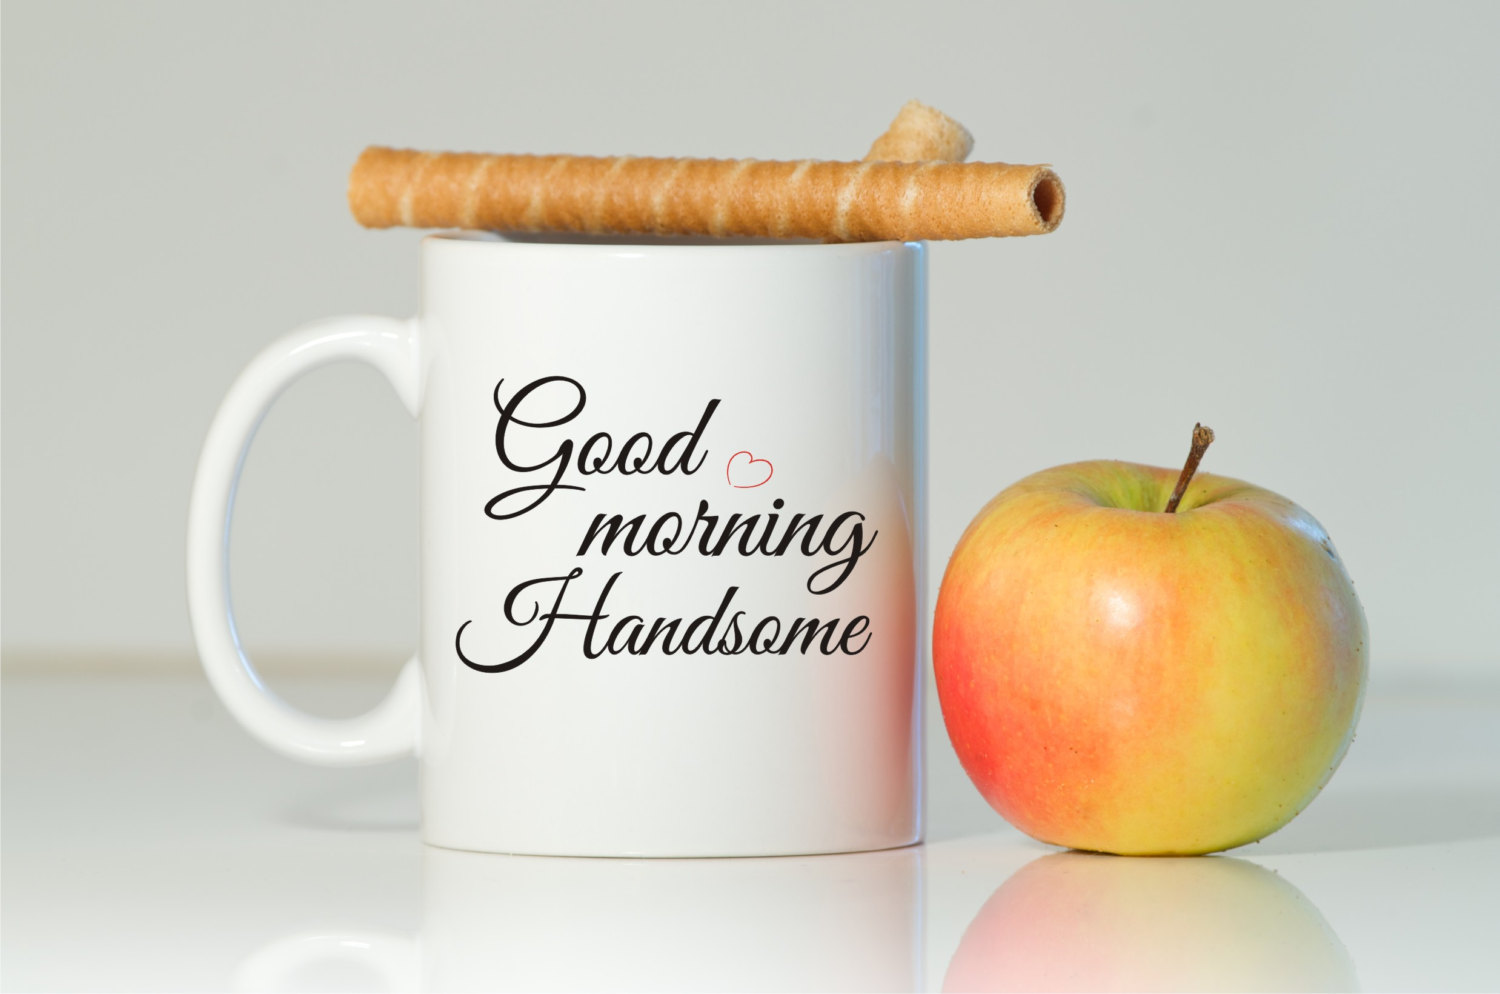 Good Morning In French To A Man : Good morning handsome